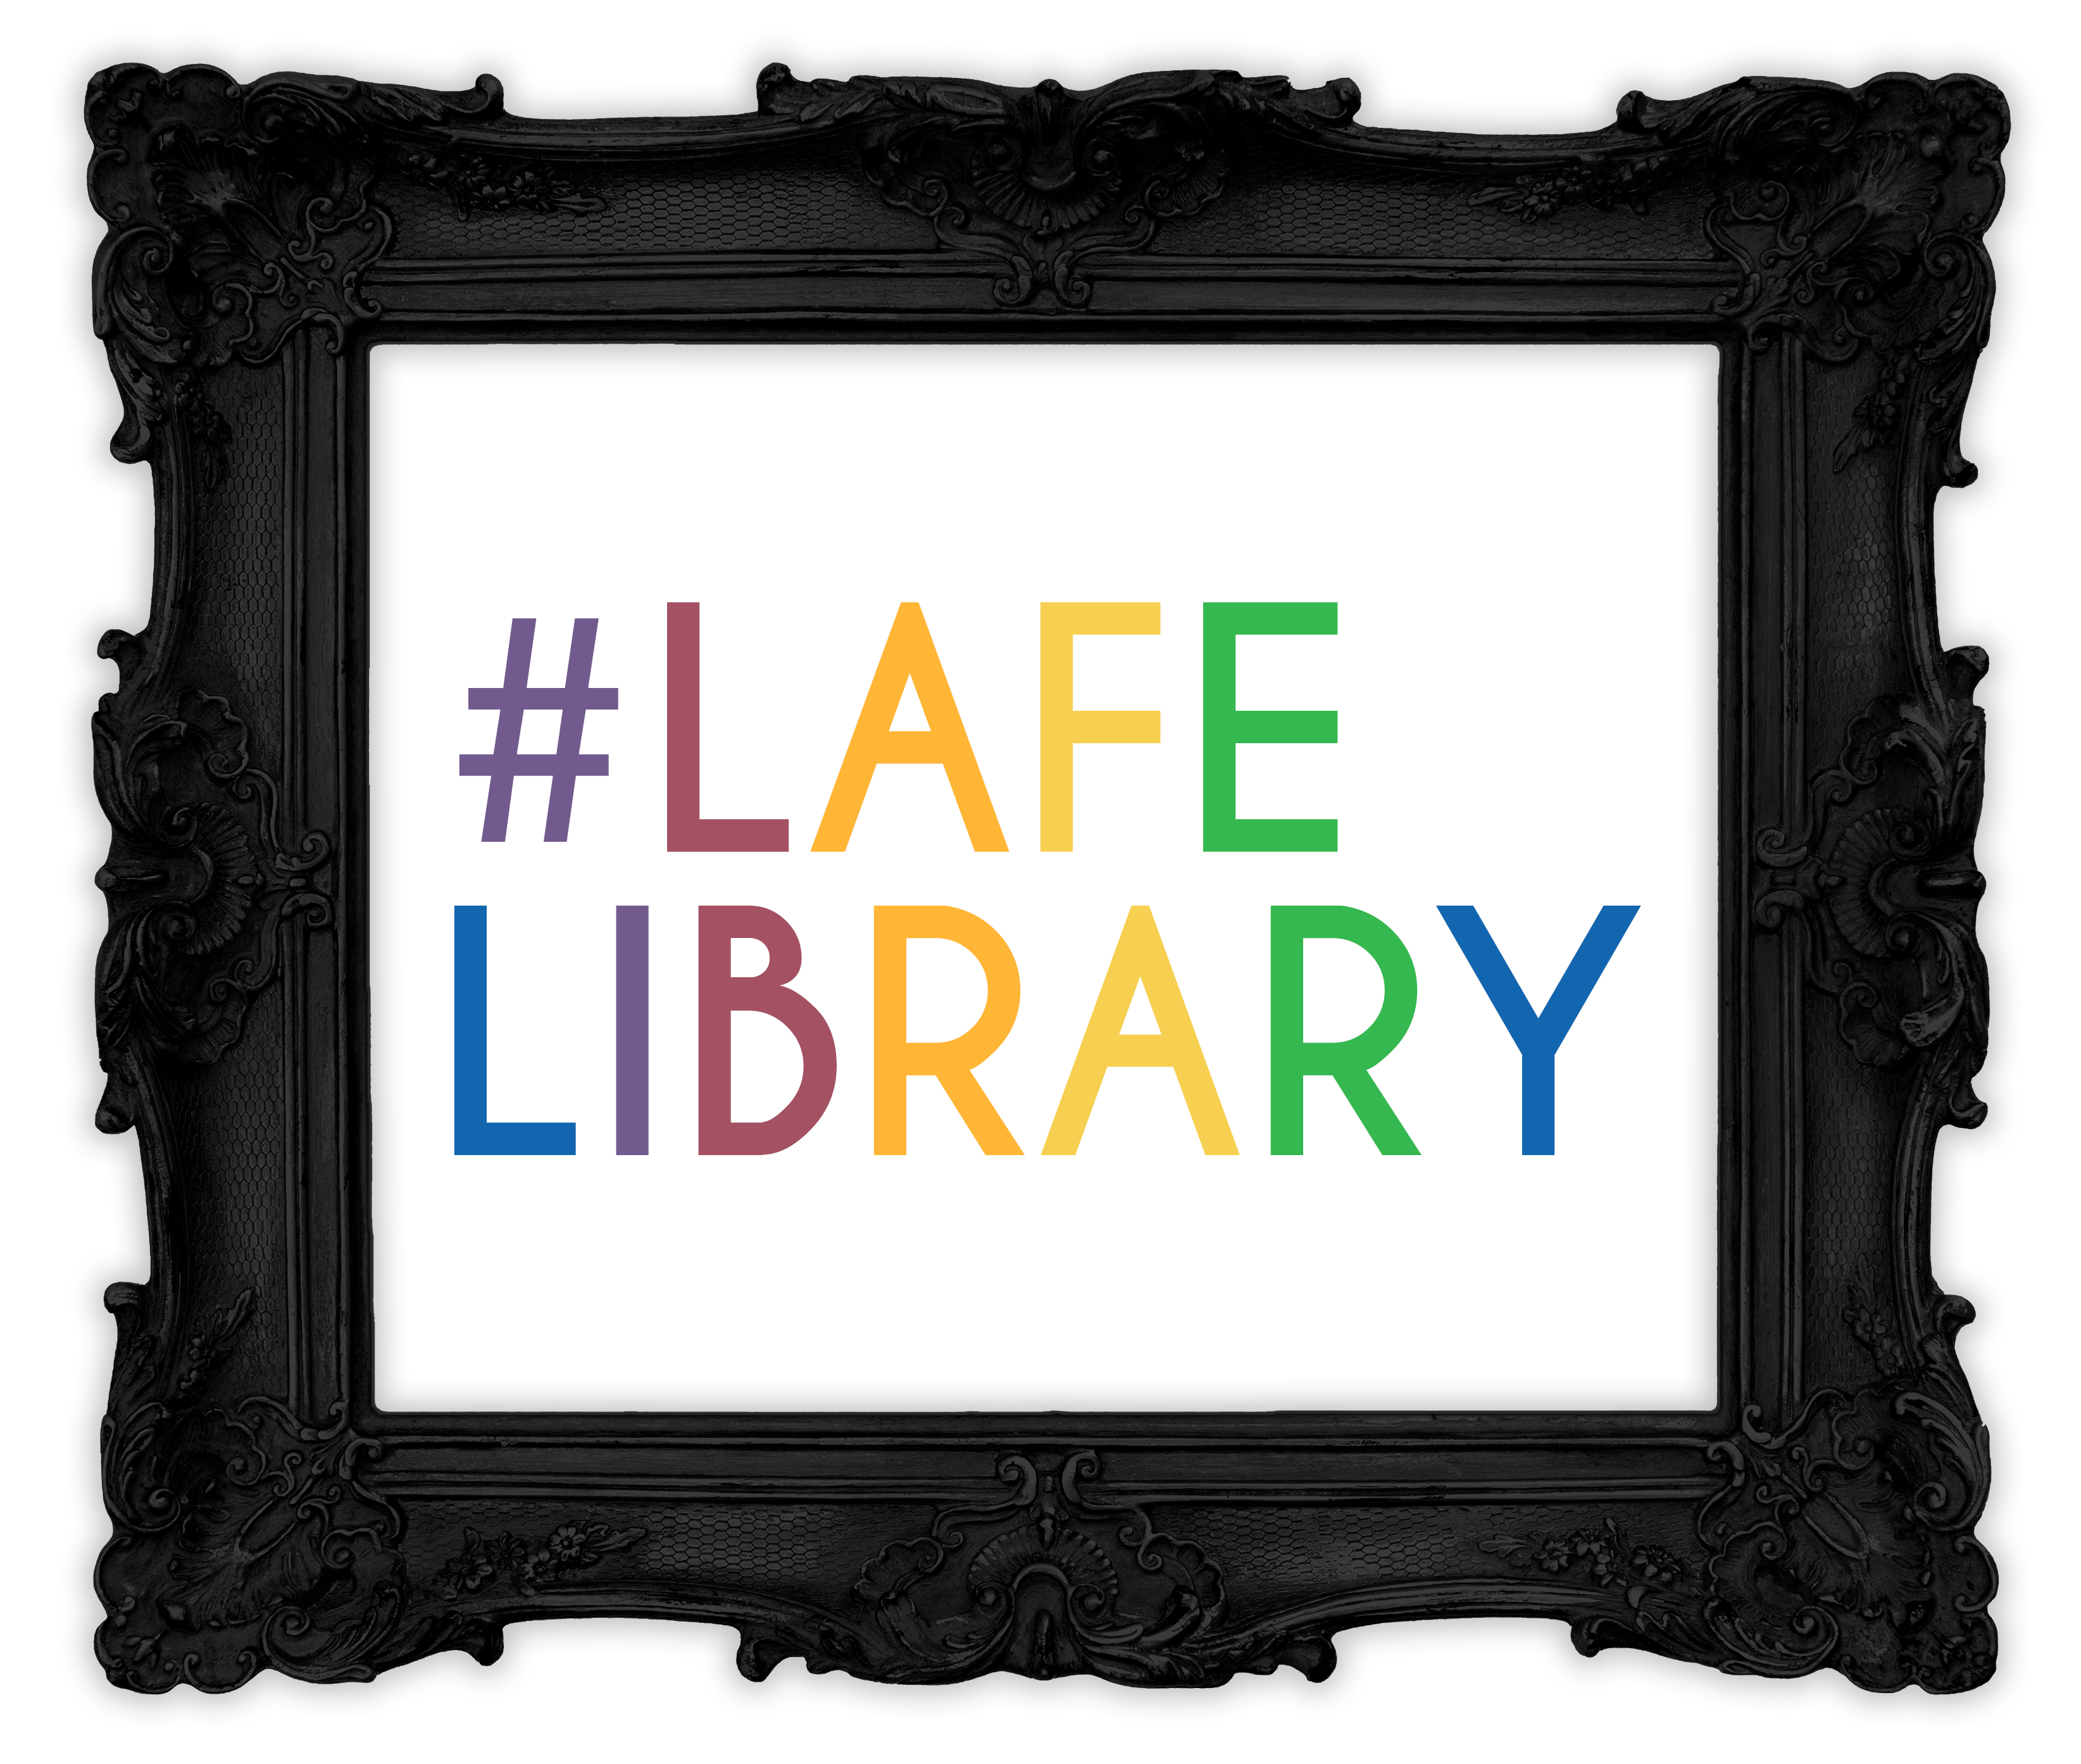 This image links to Hafuboti's #LAFE Library - an alphabetized set of Libraries Are For Everyone signs in many languages.